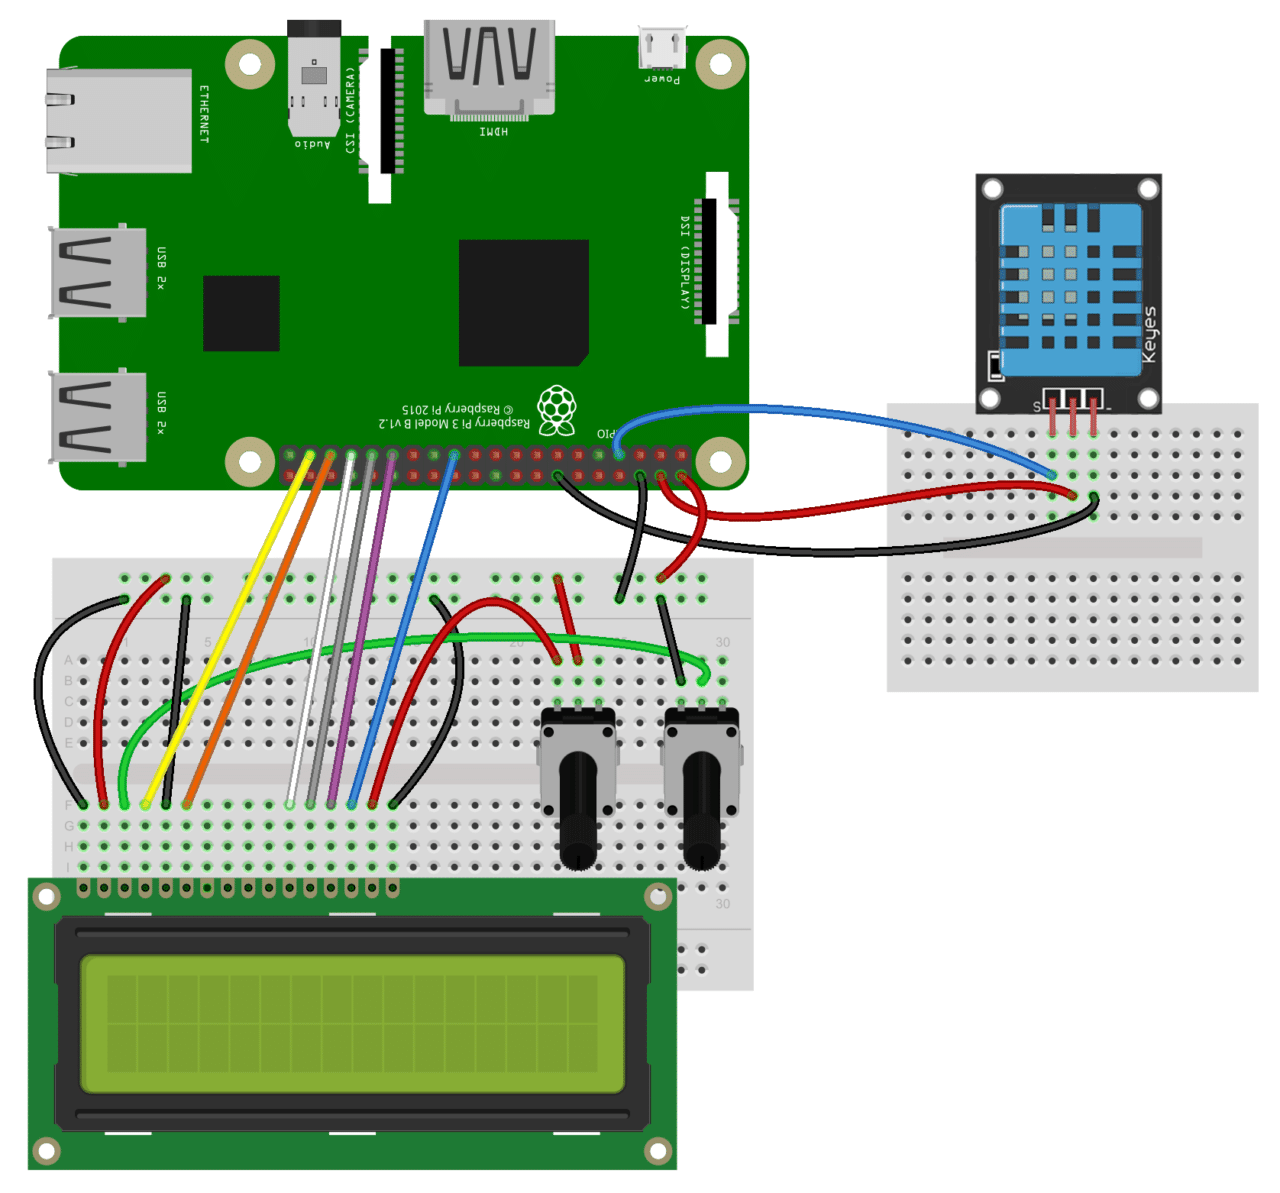 How To Set Up The Dht11 Humidity Sensor On Raspberry Pi Wiringpi Not Working Wiring For Lcd Output